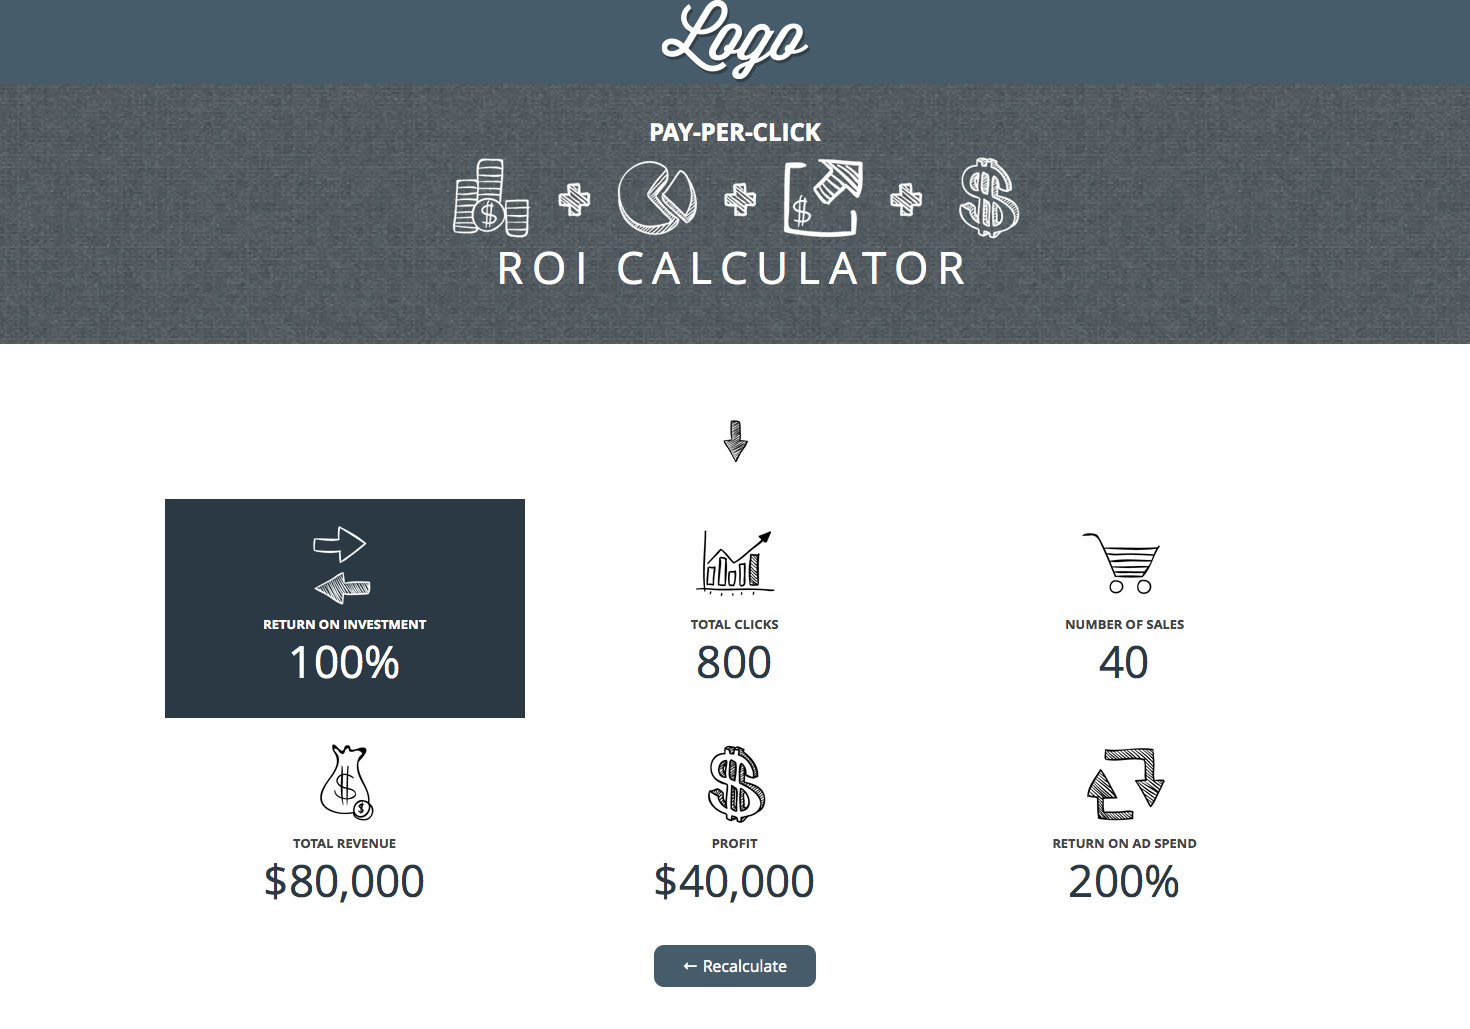 Calculations allow you to see your ROI, total clicks, number of sales, total revenue, profit, and return on ad spend.